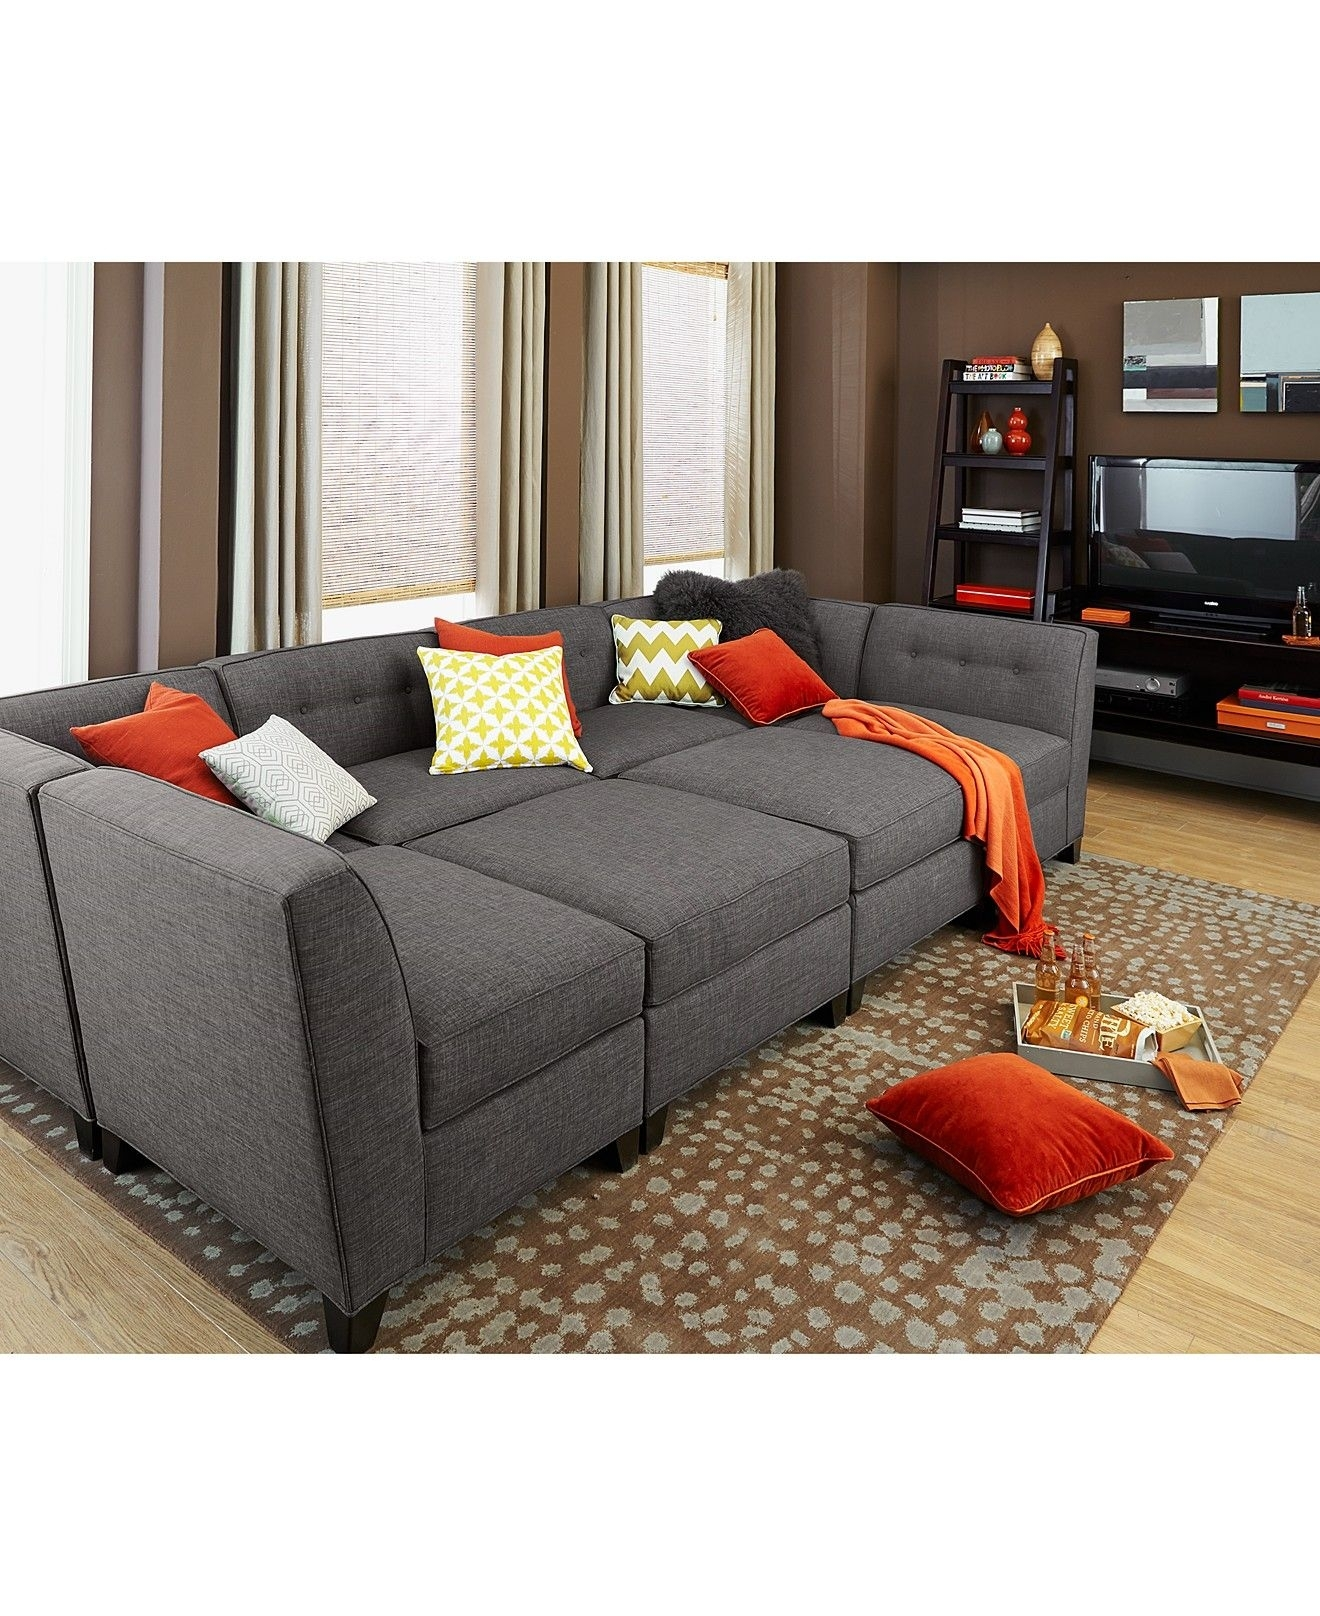 Harper Fabric Modular Sectional Sofa 6 Piece Square Corner Unit throughout Aquarius Light Grey 2 Piece Sectionals With Laf Chaise (Image 16 of 30)